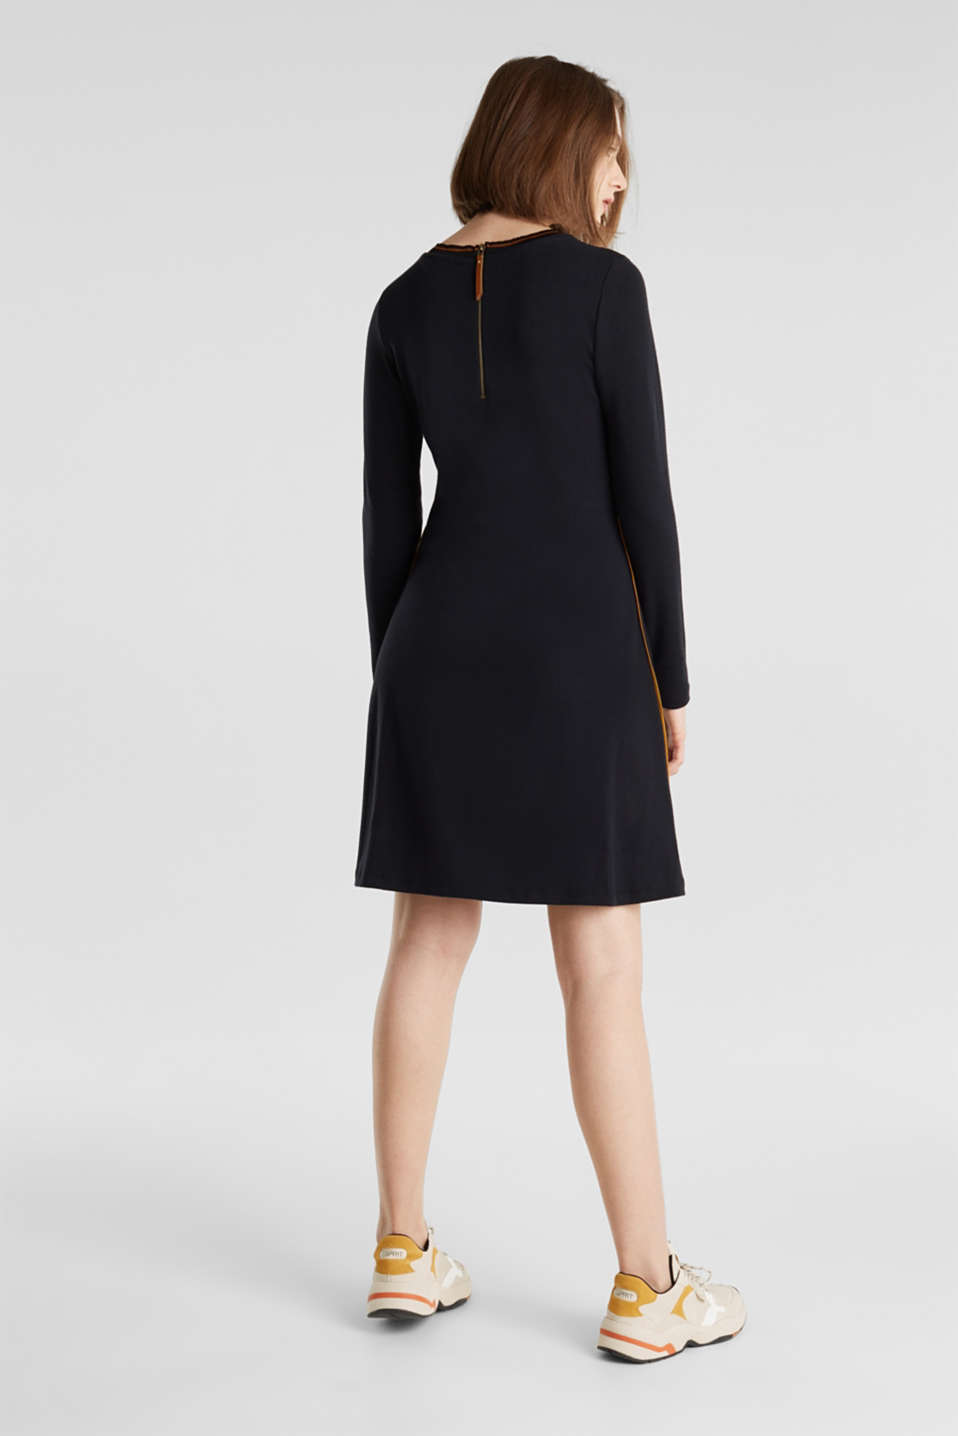 Piped stretch jersey dress, BLACK, detail image number 2